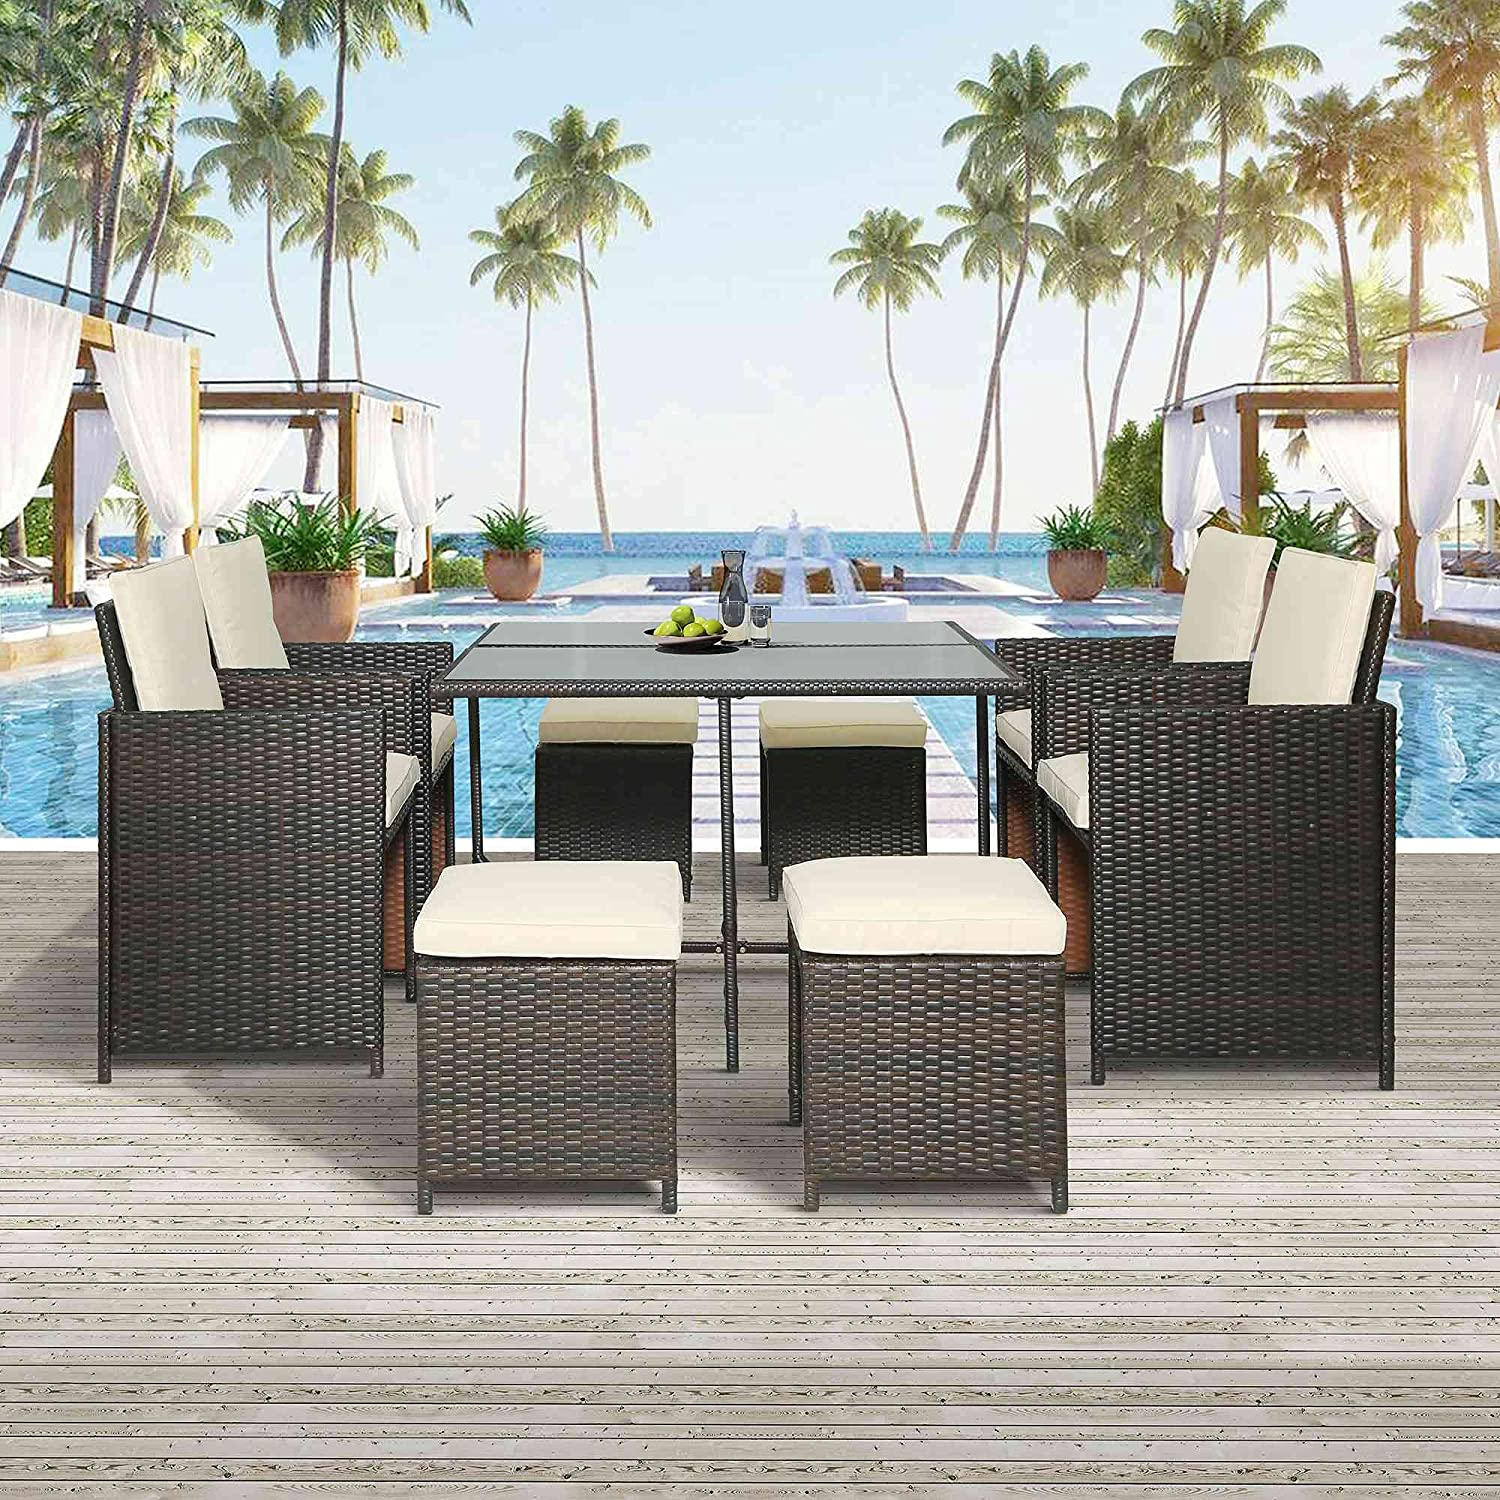 Tulib 9 Pieces Patio Dining, Outdoor Space Saving Rattan Chairs with Glass Table, PE Wicker Furniture Cushioned Seating and Back Sectional Conversation Set (Brown)